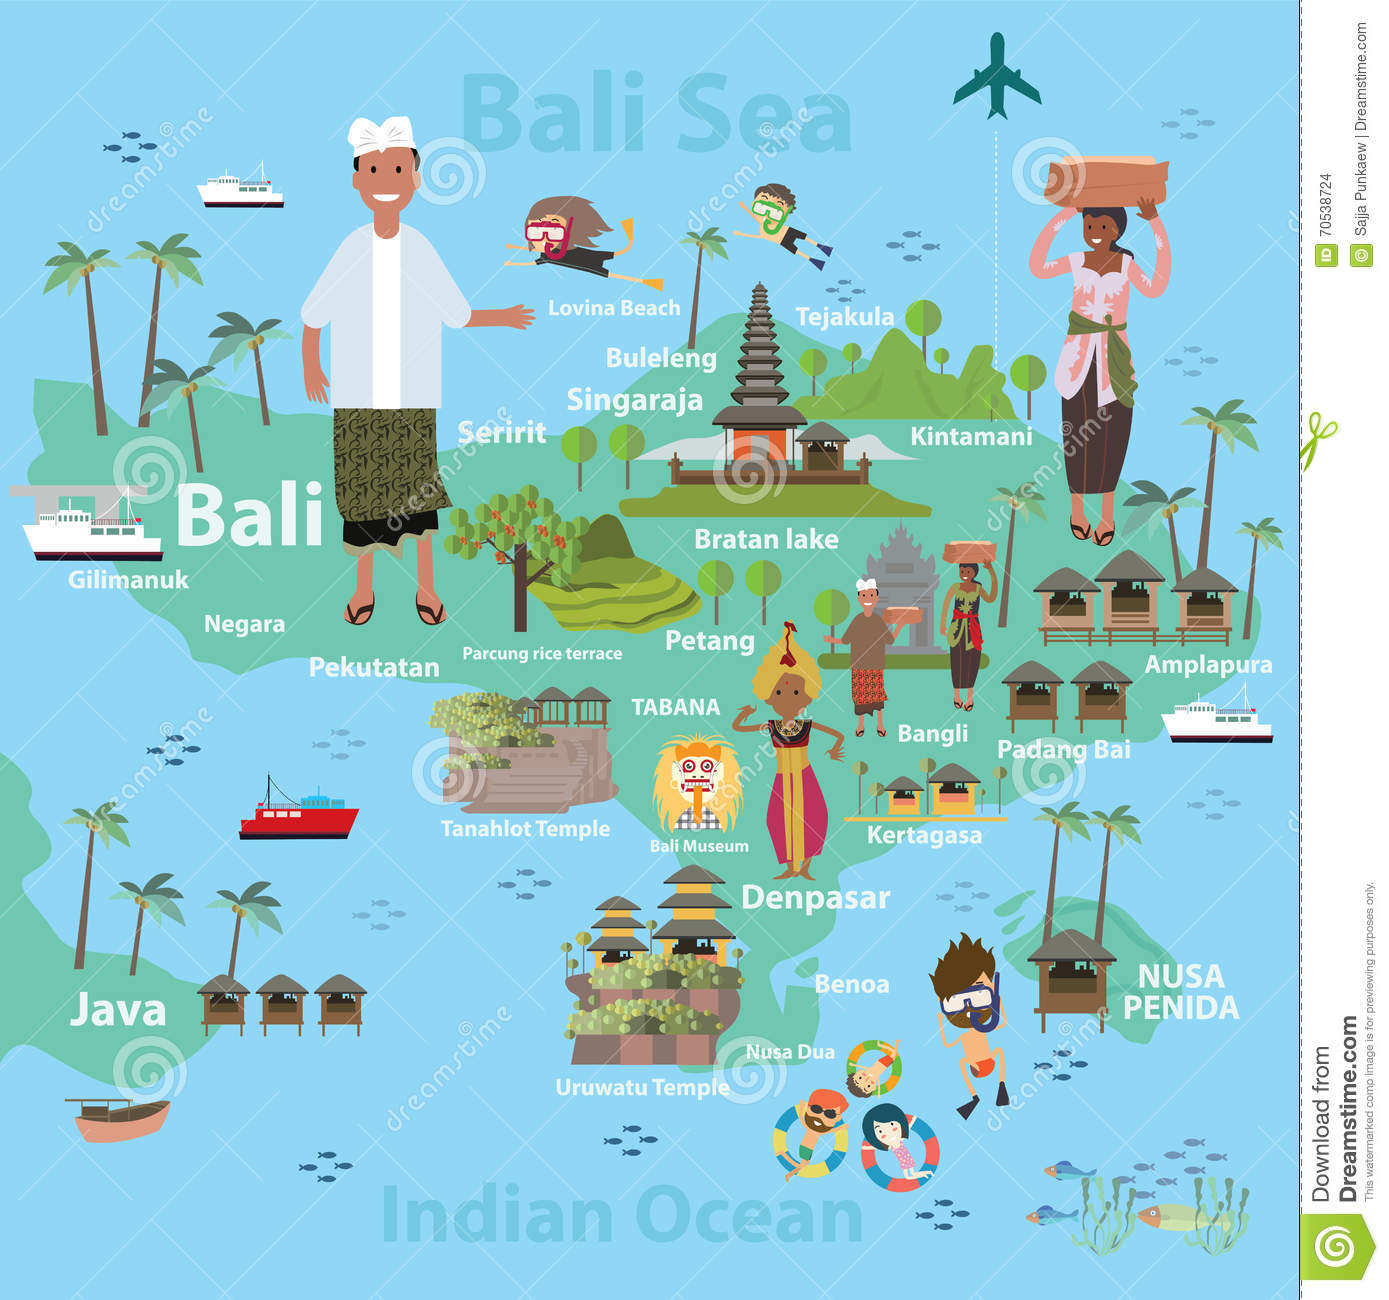 Bali Indonesia Map And Travel Stock Vector - Illustration of asia ...